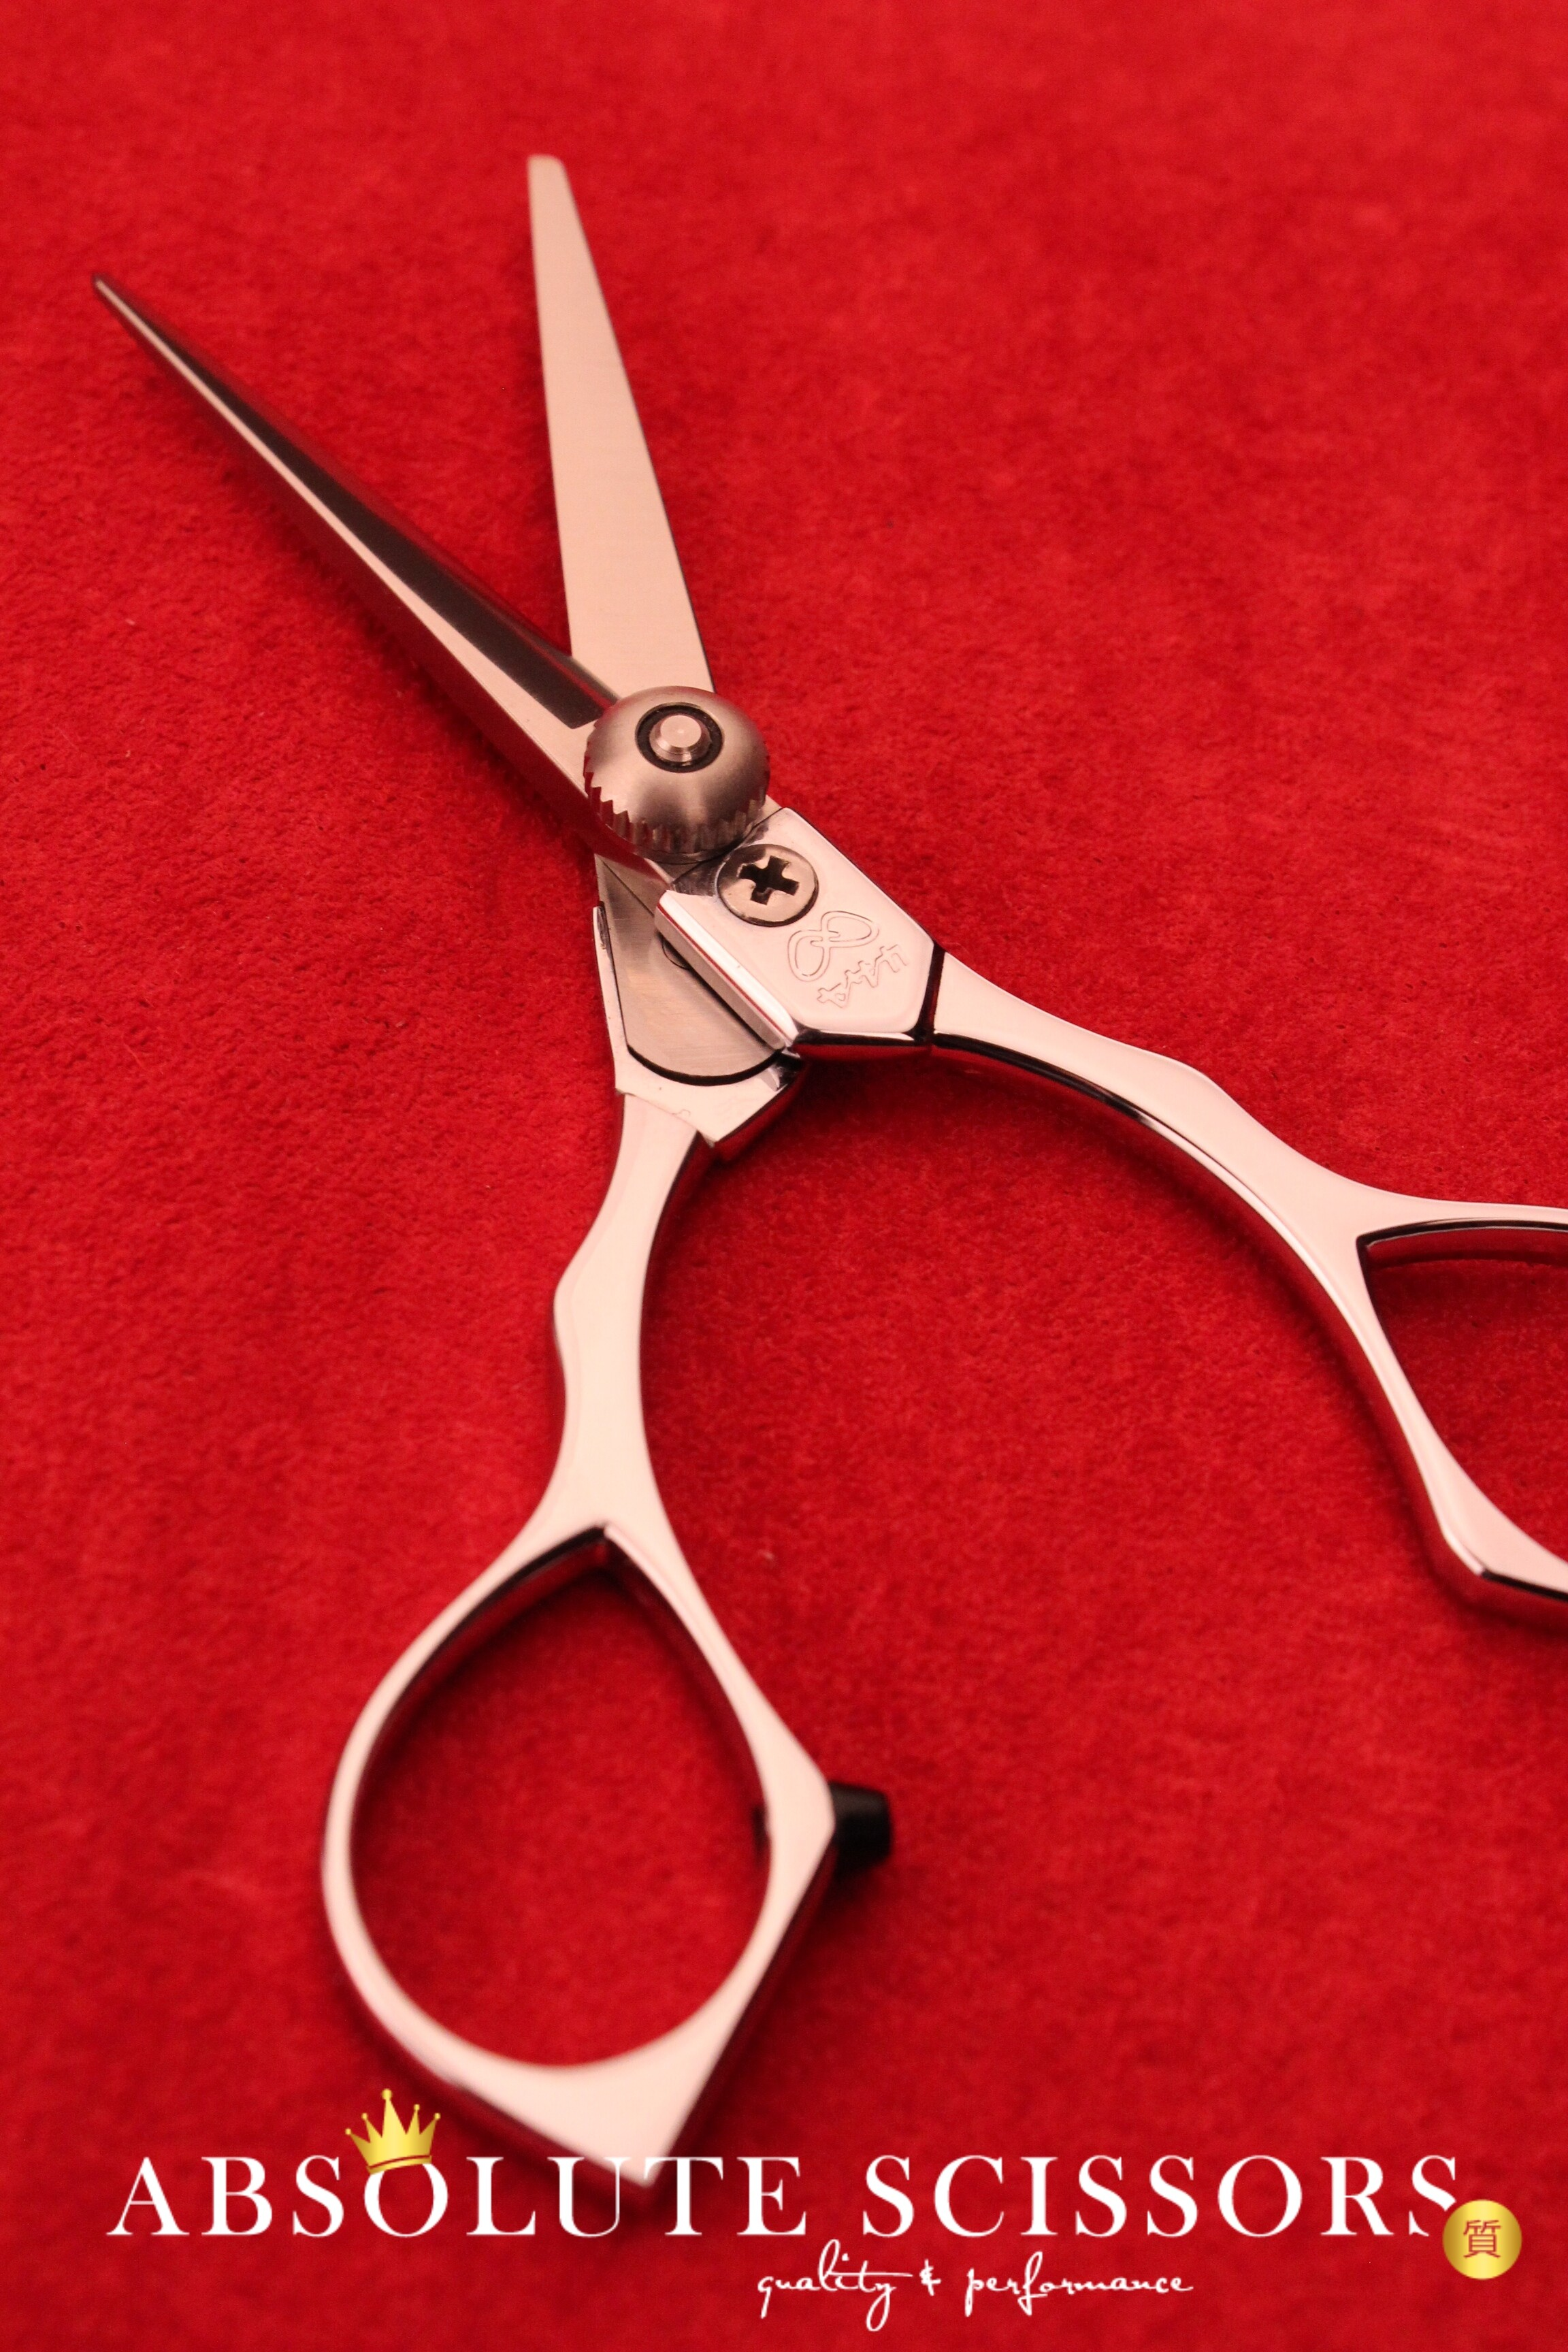 yasaka hair shears size 4.5 inches